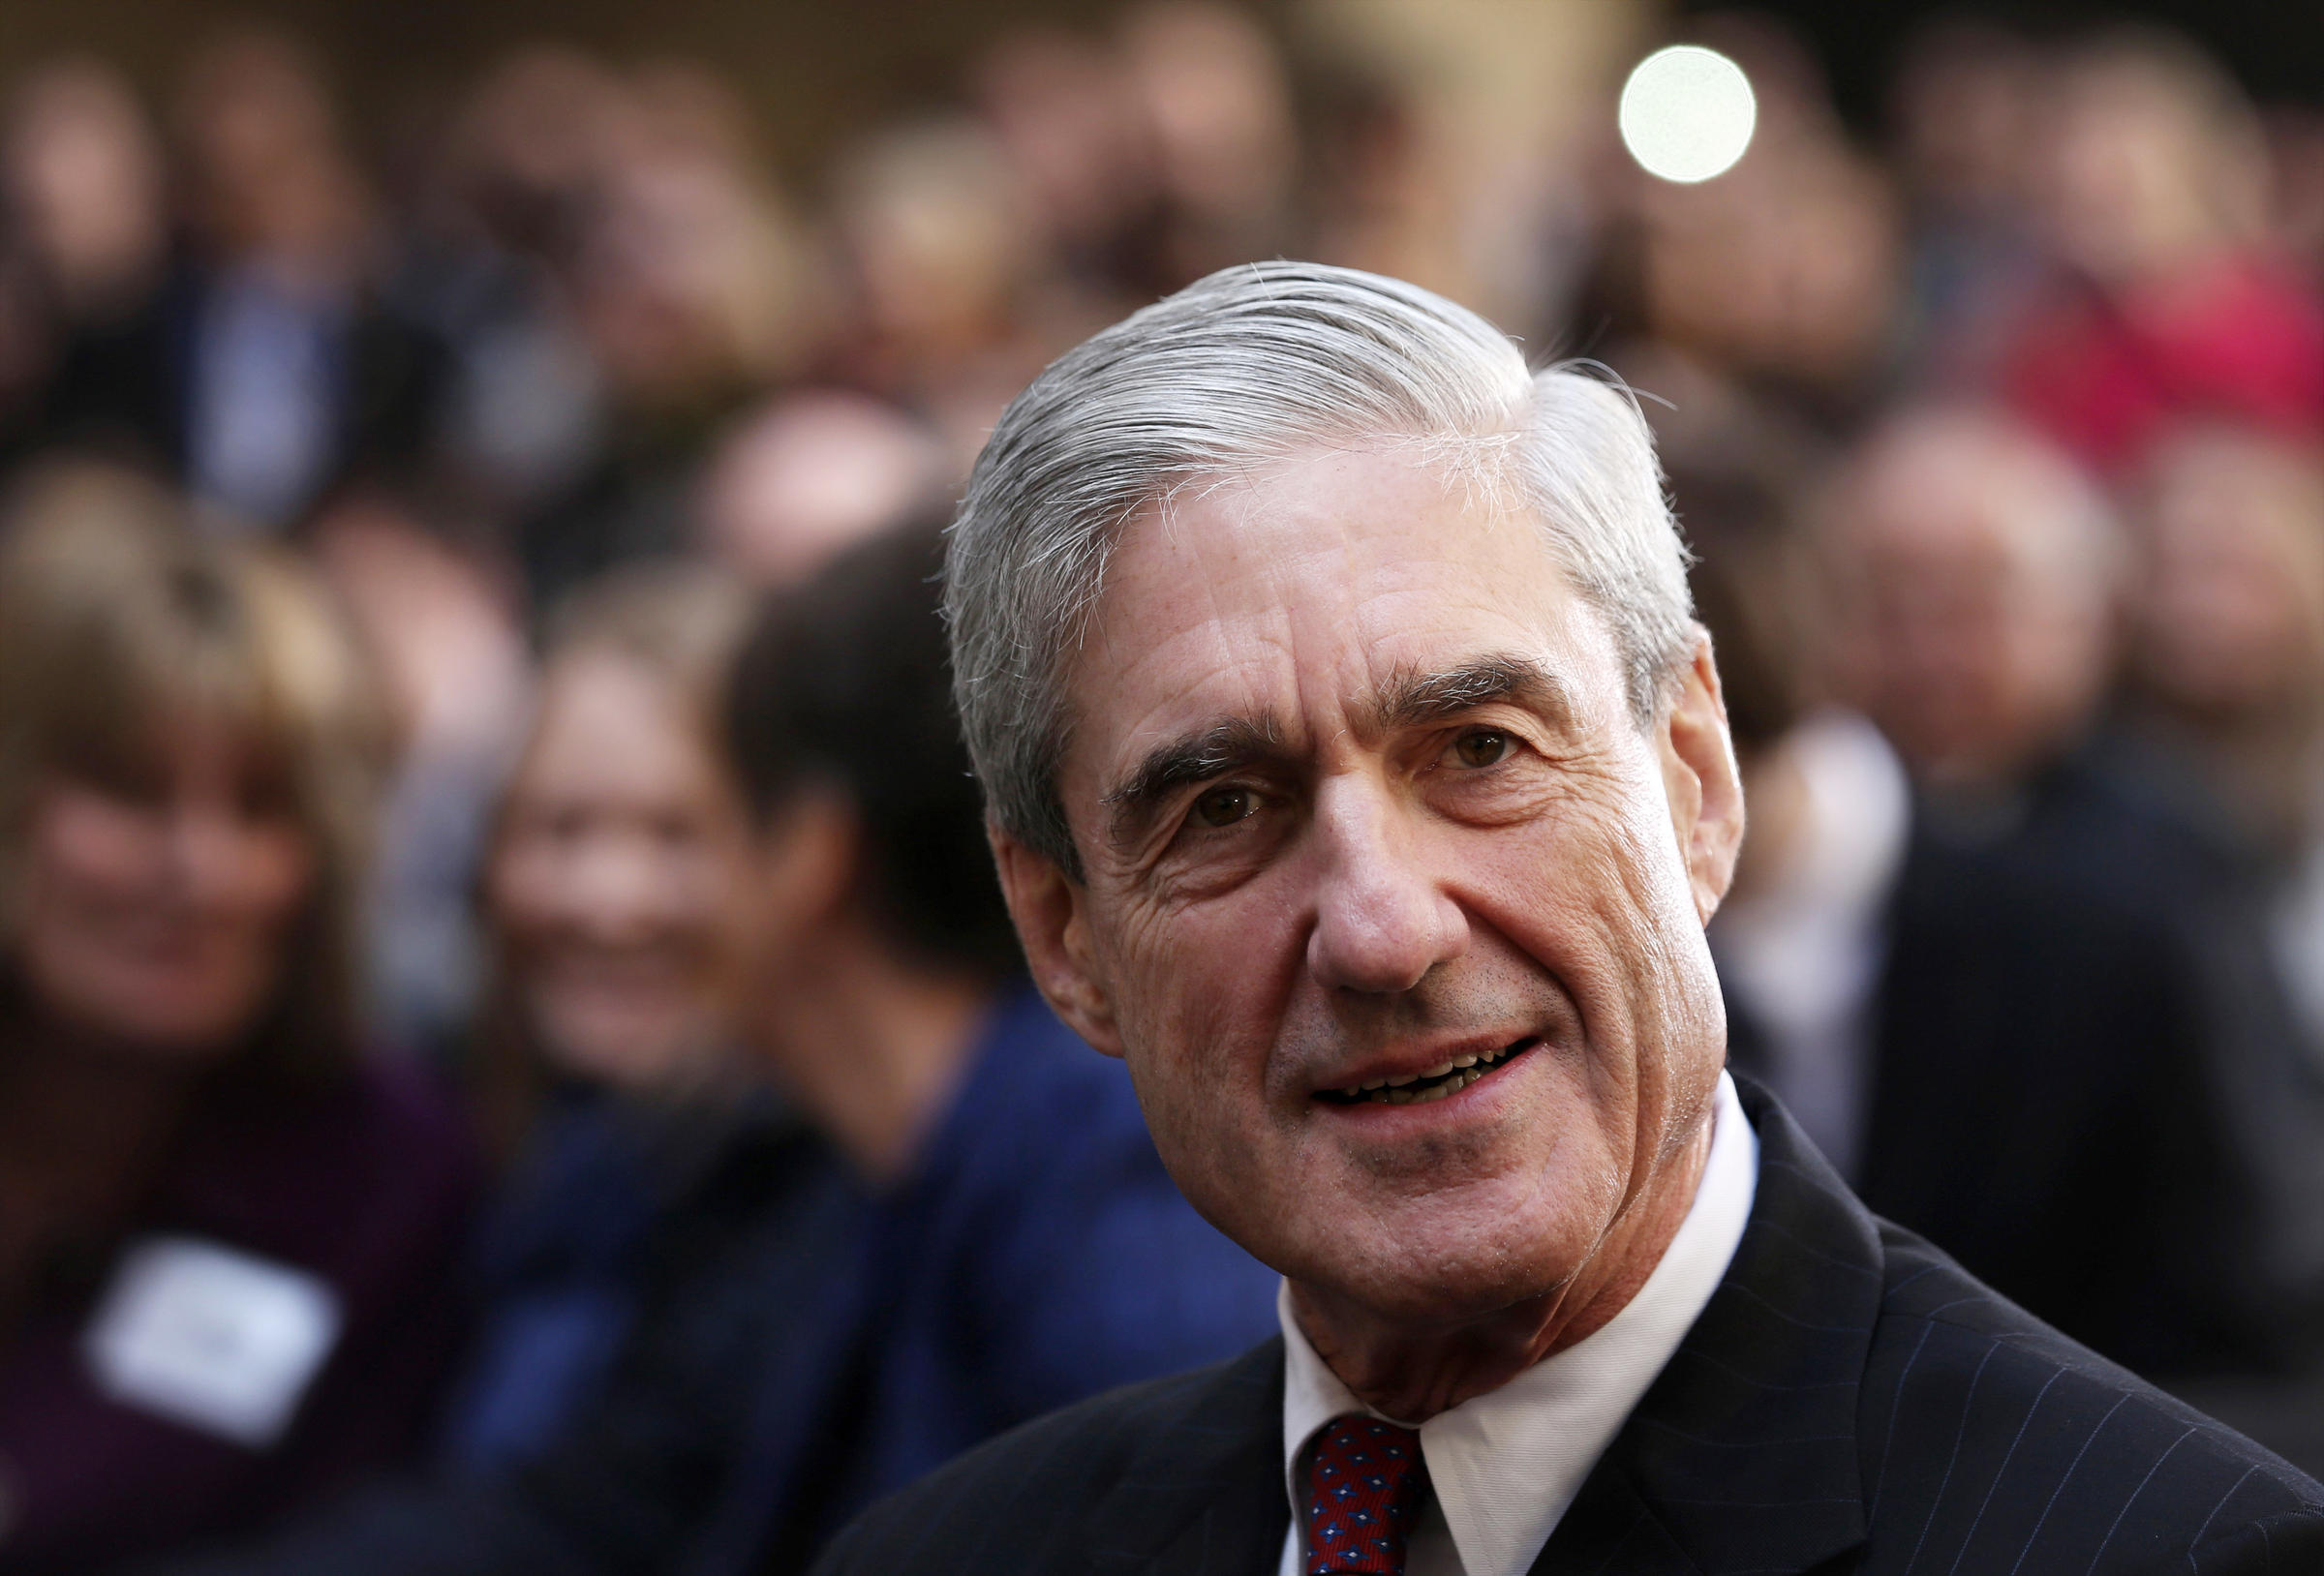 Mueller was under consideration to lead the Federal Bureau of Investigation